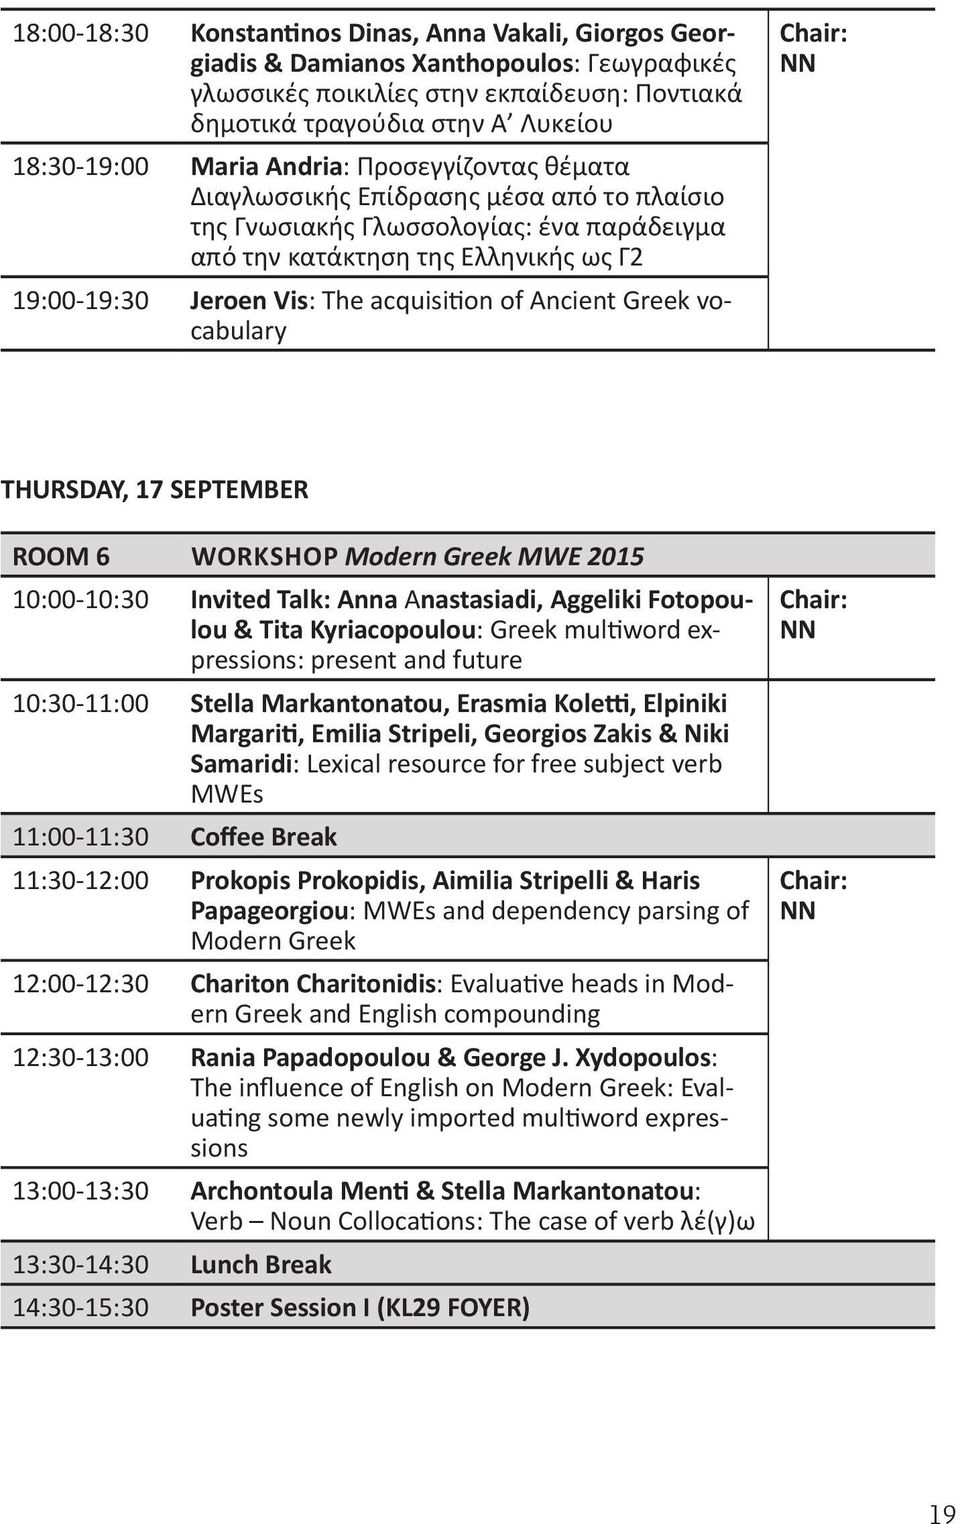 Ancient Greek vocabulary THURSDAY, 17 SEPTEMBER ROOM 6 WORKSHOP Modern Greek MWE 2015 10:00-10:30 Invited Talk: Anna Αnastasiadi, Aggeliki Fotopoulou & Tita Kyriacopoulou: Greek multiword